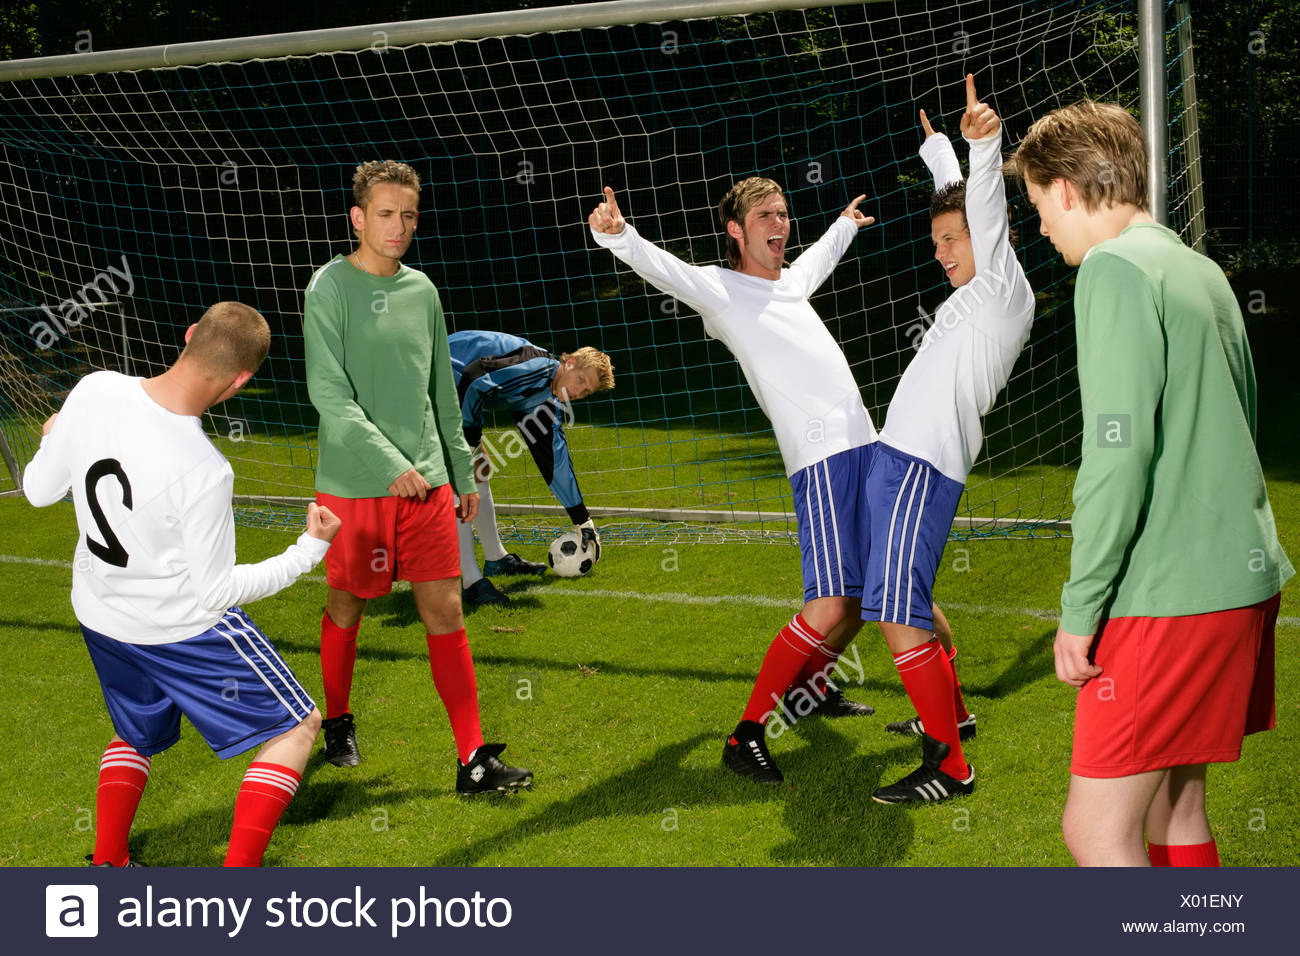 Three young footballers are happy about having won a game whereas the other team is looking sad - Stock Image